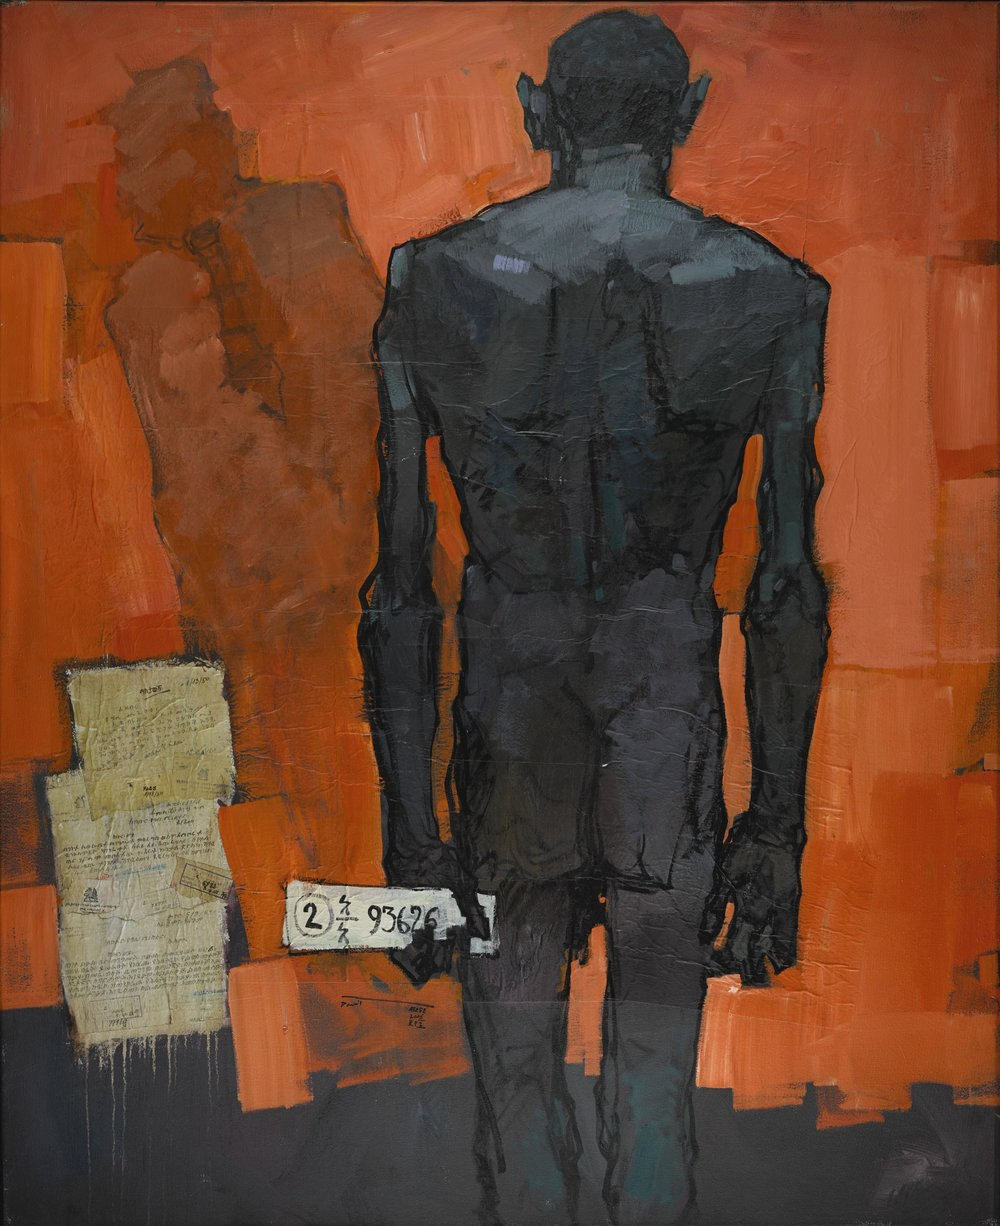 Dawit Abebe,  No.2 Background 5 , 2014, courtesy of Kristin Hjellegjerdge Gallery